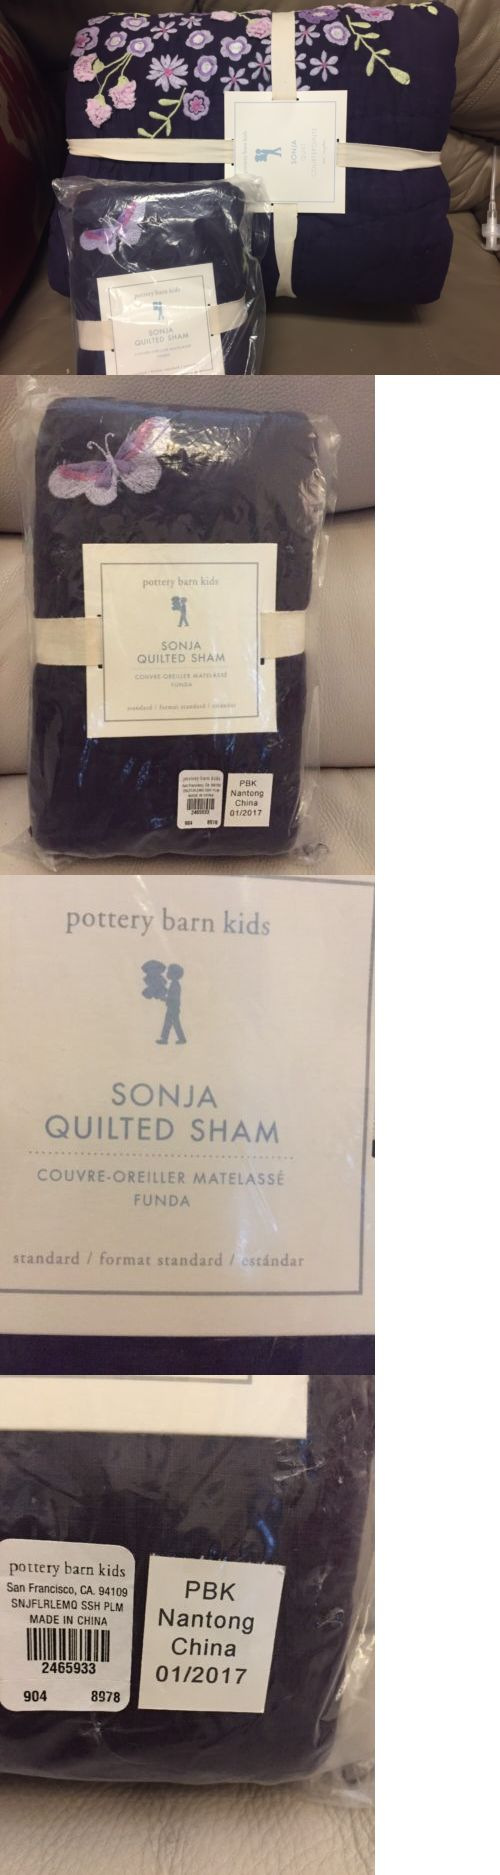 Pillow Shams 66729: 2Pc New Pottery Barn Kids Sonja Quilt And Standard Sham Purple Butterfly -> BUY IT NOW ONLY: $170.95 on eBay!